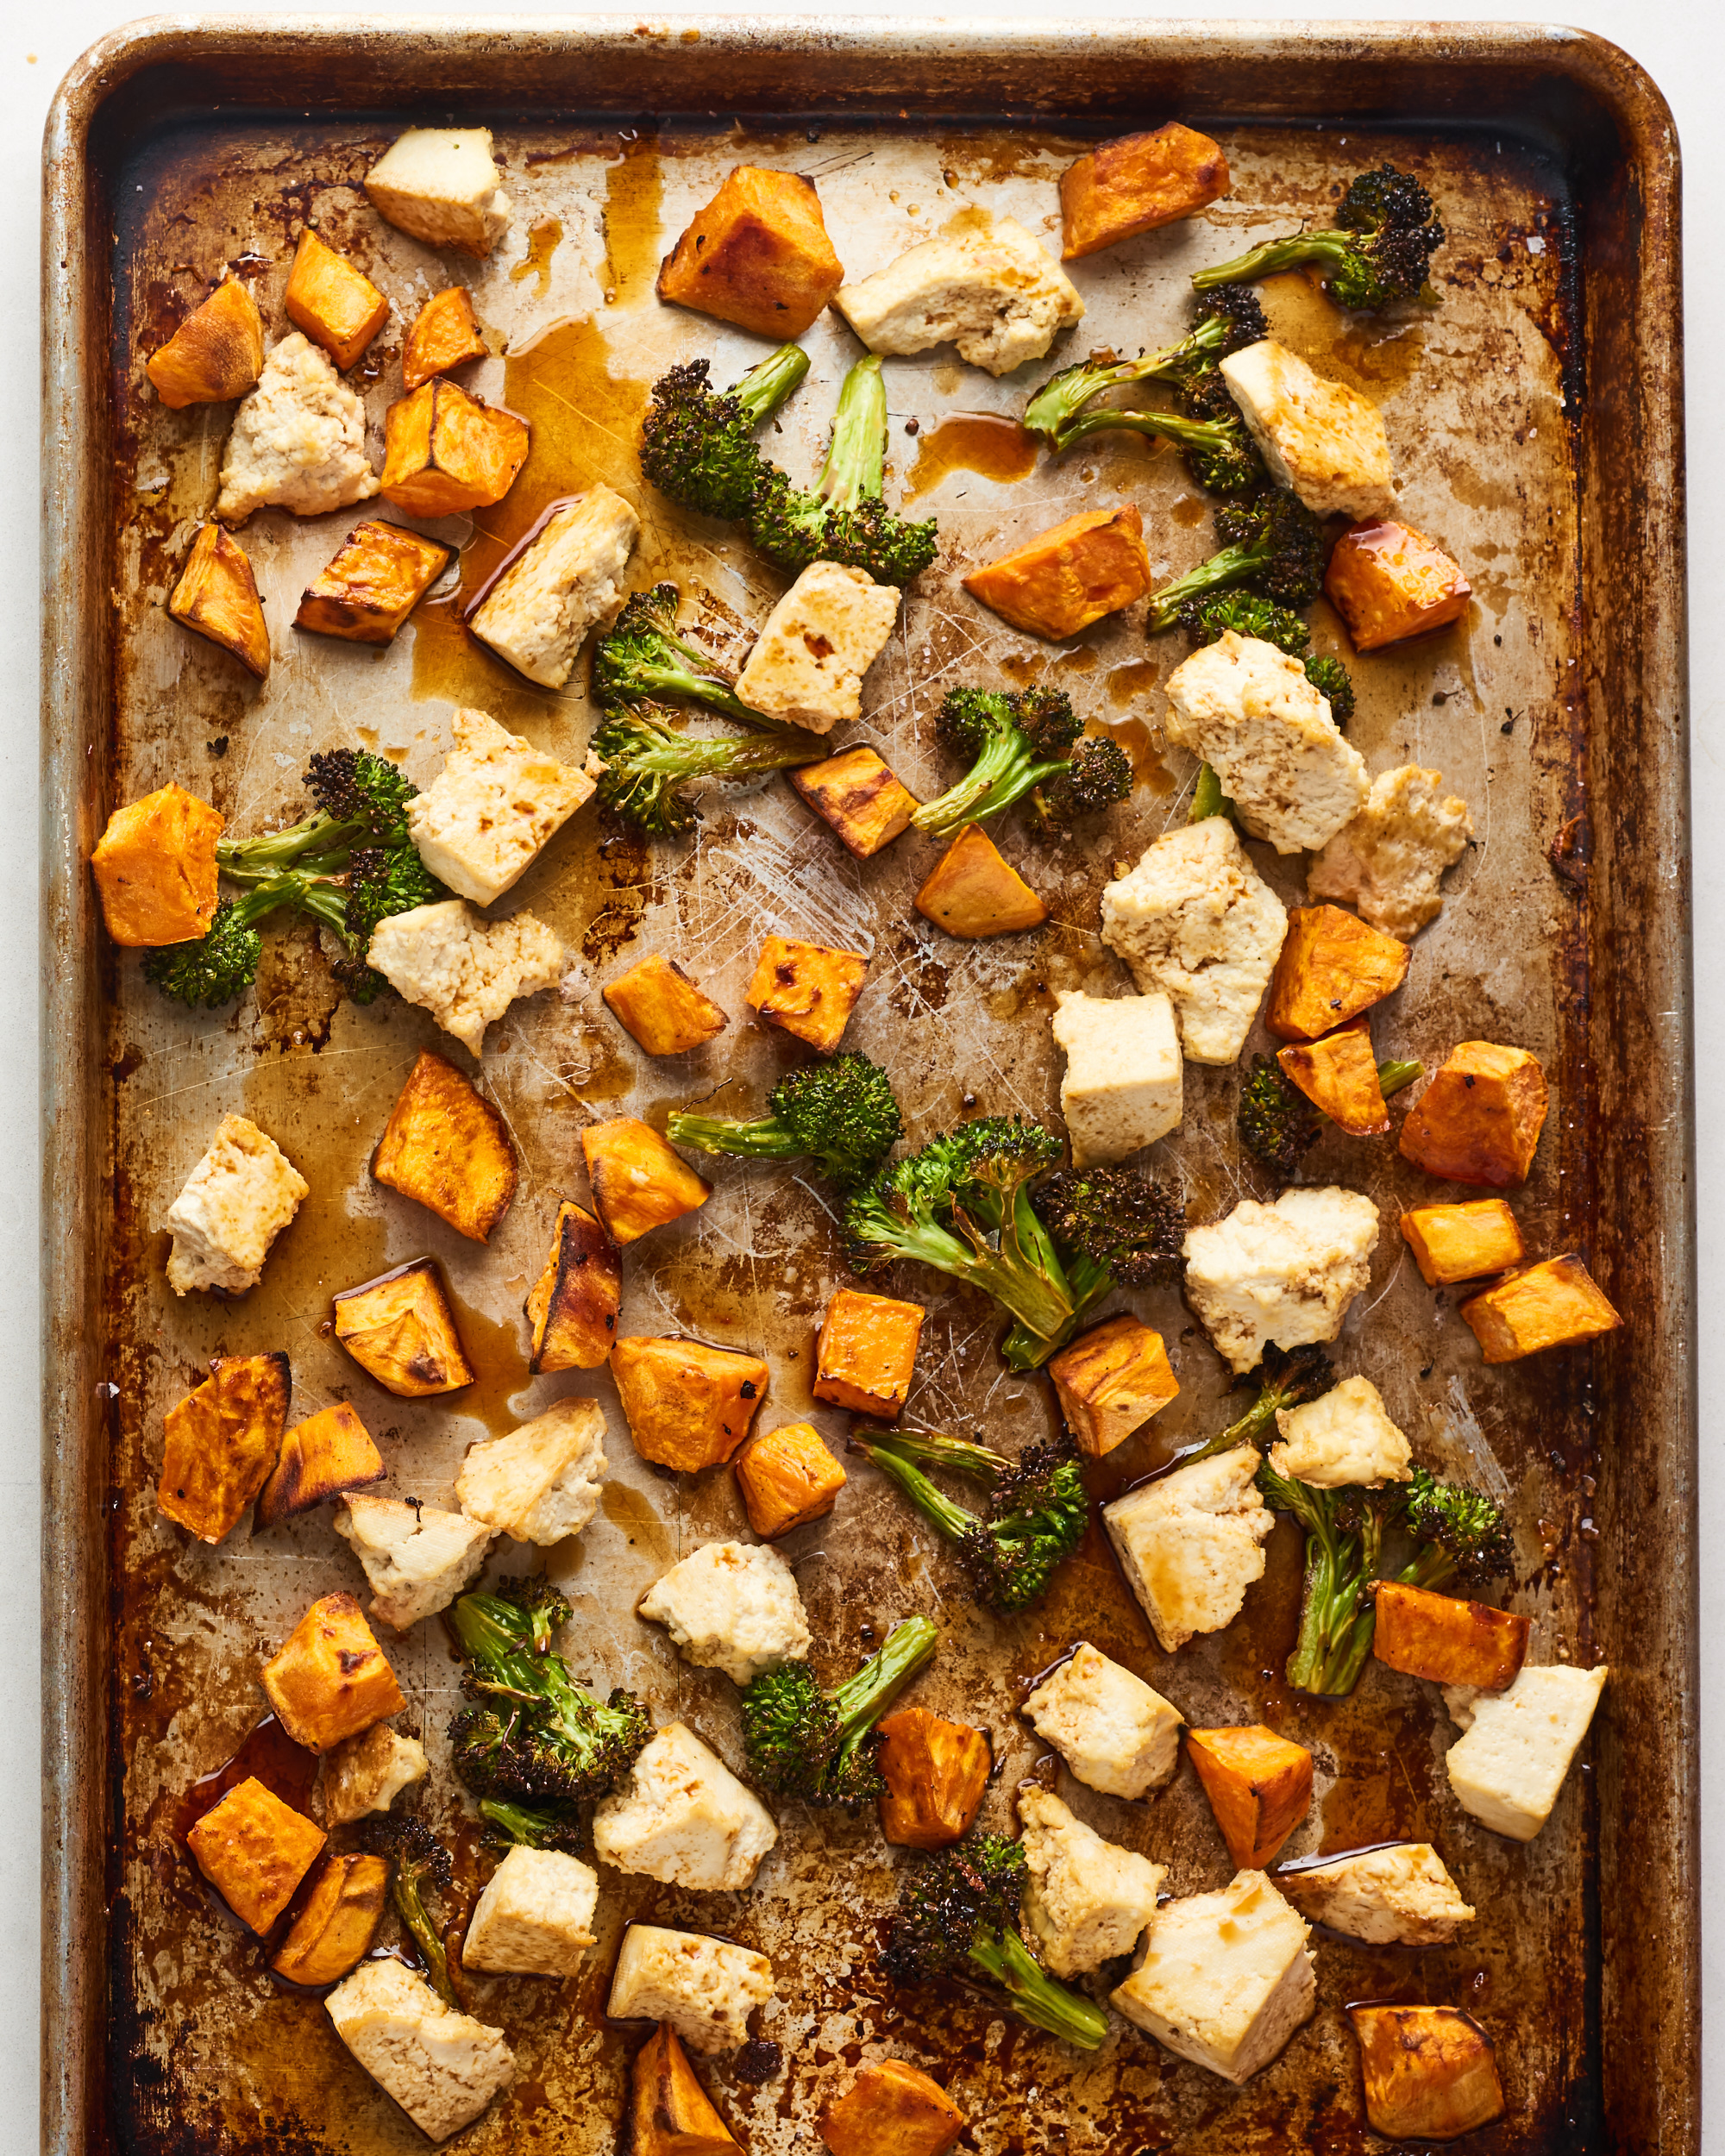 This Sheet Pan Stir-Fry Is the Tastiest, Easiest Way to Cook Tofu Tonight